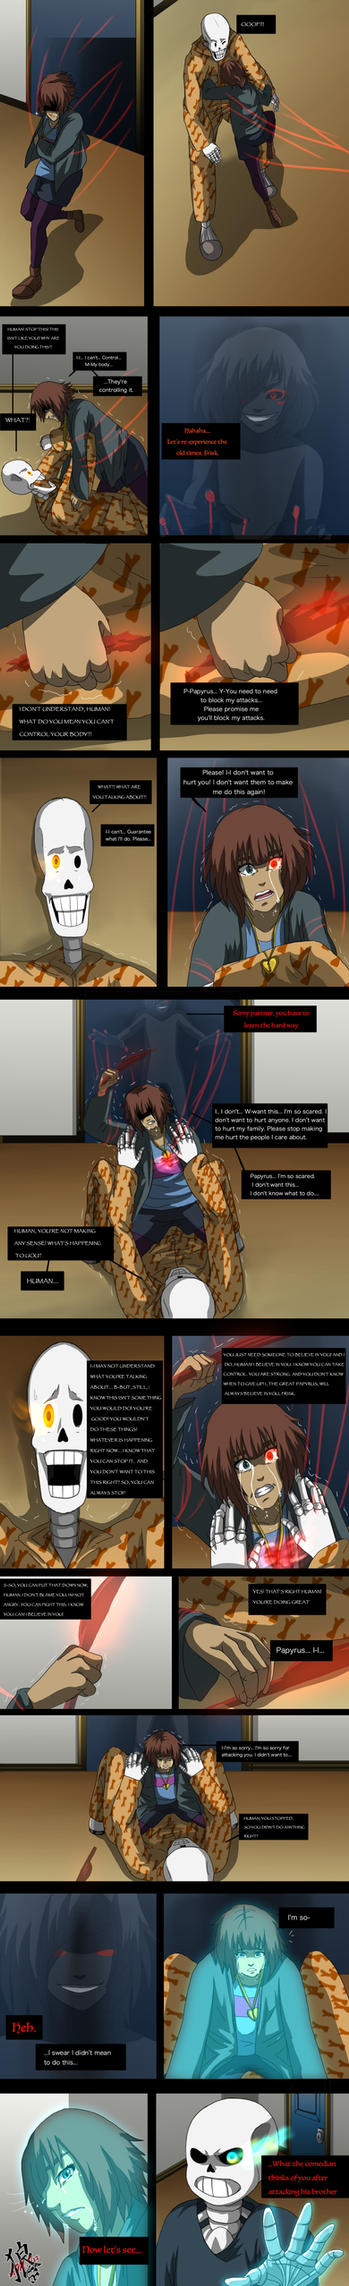 ::Nightmaretale - pg 47:: by xxMileikaIvanaxx